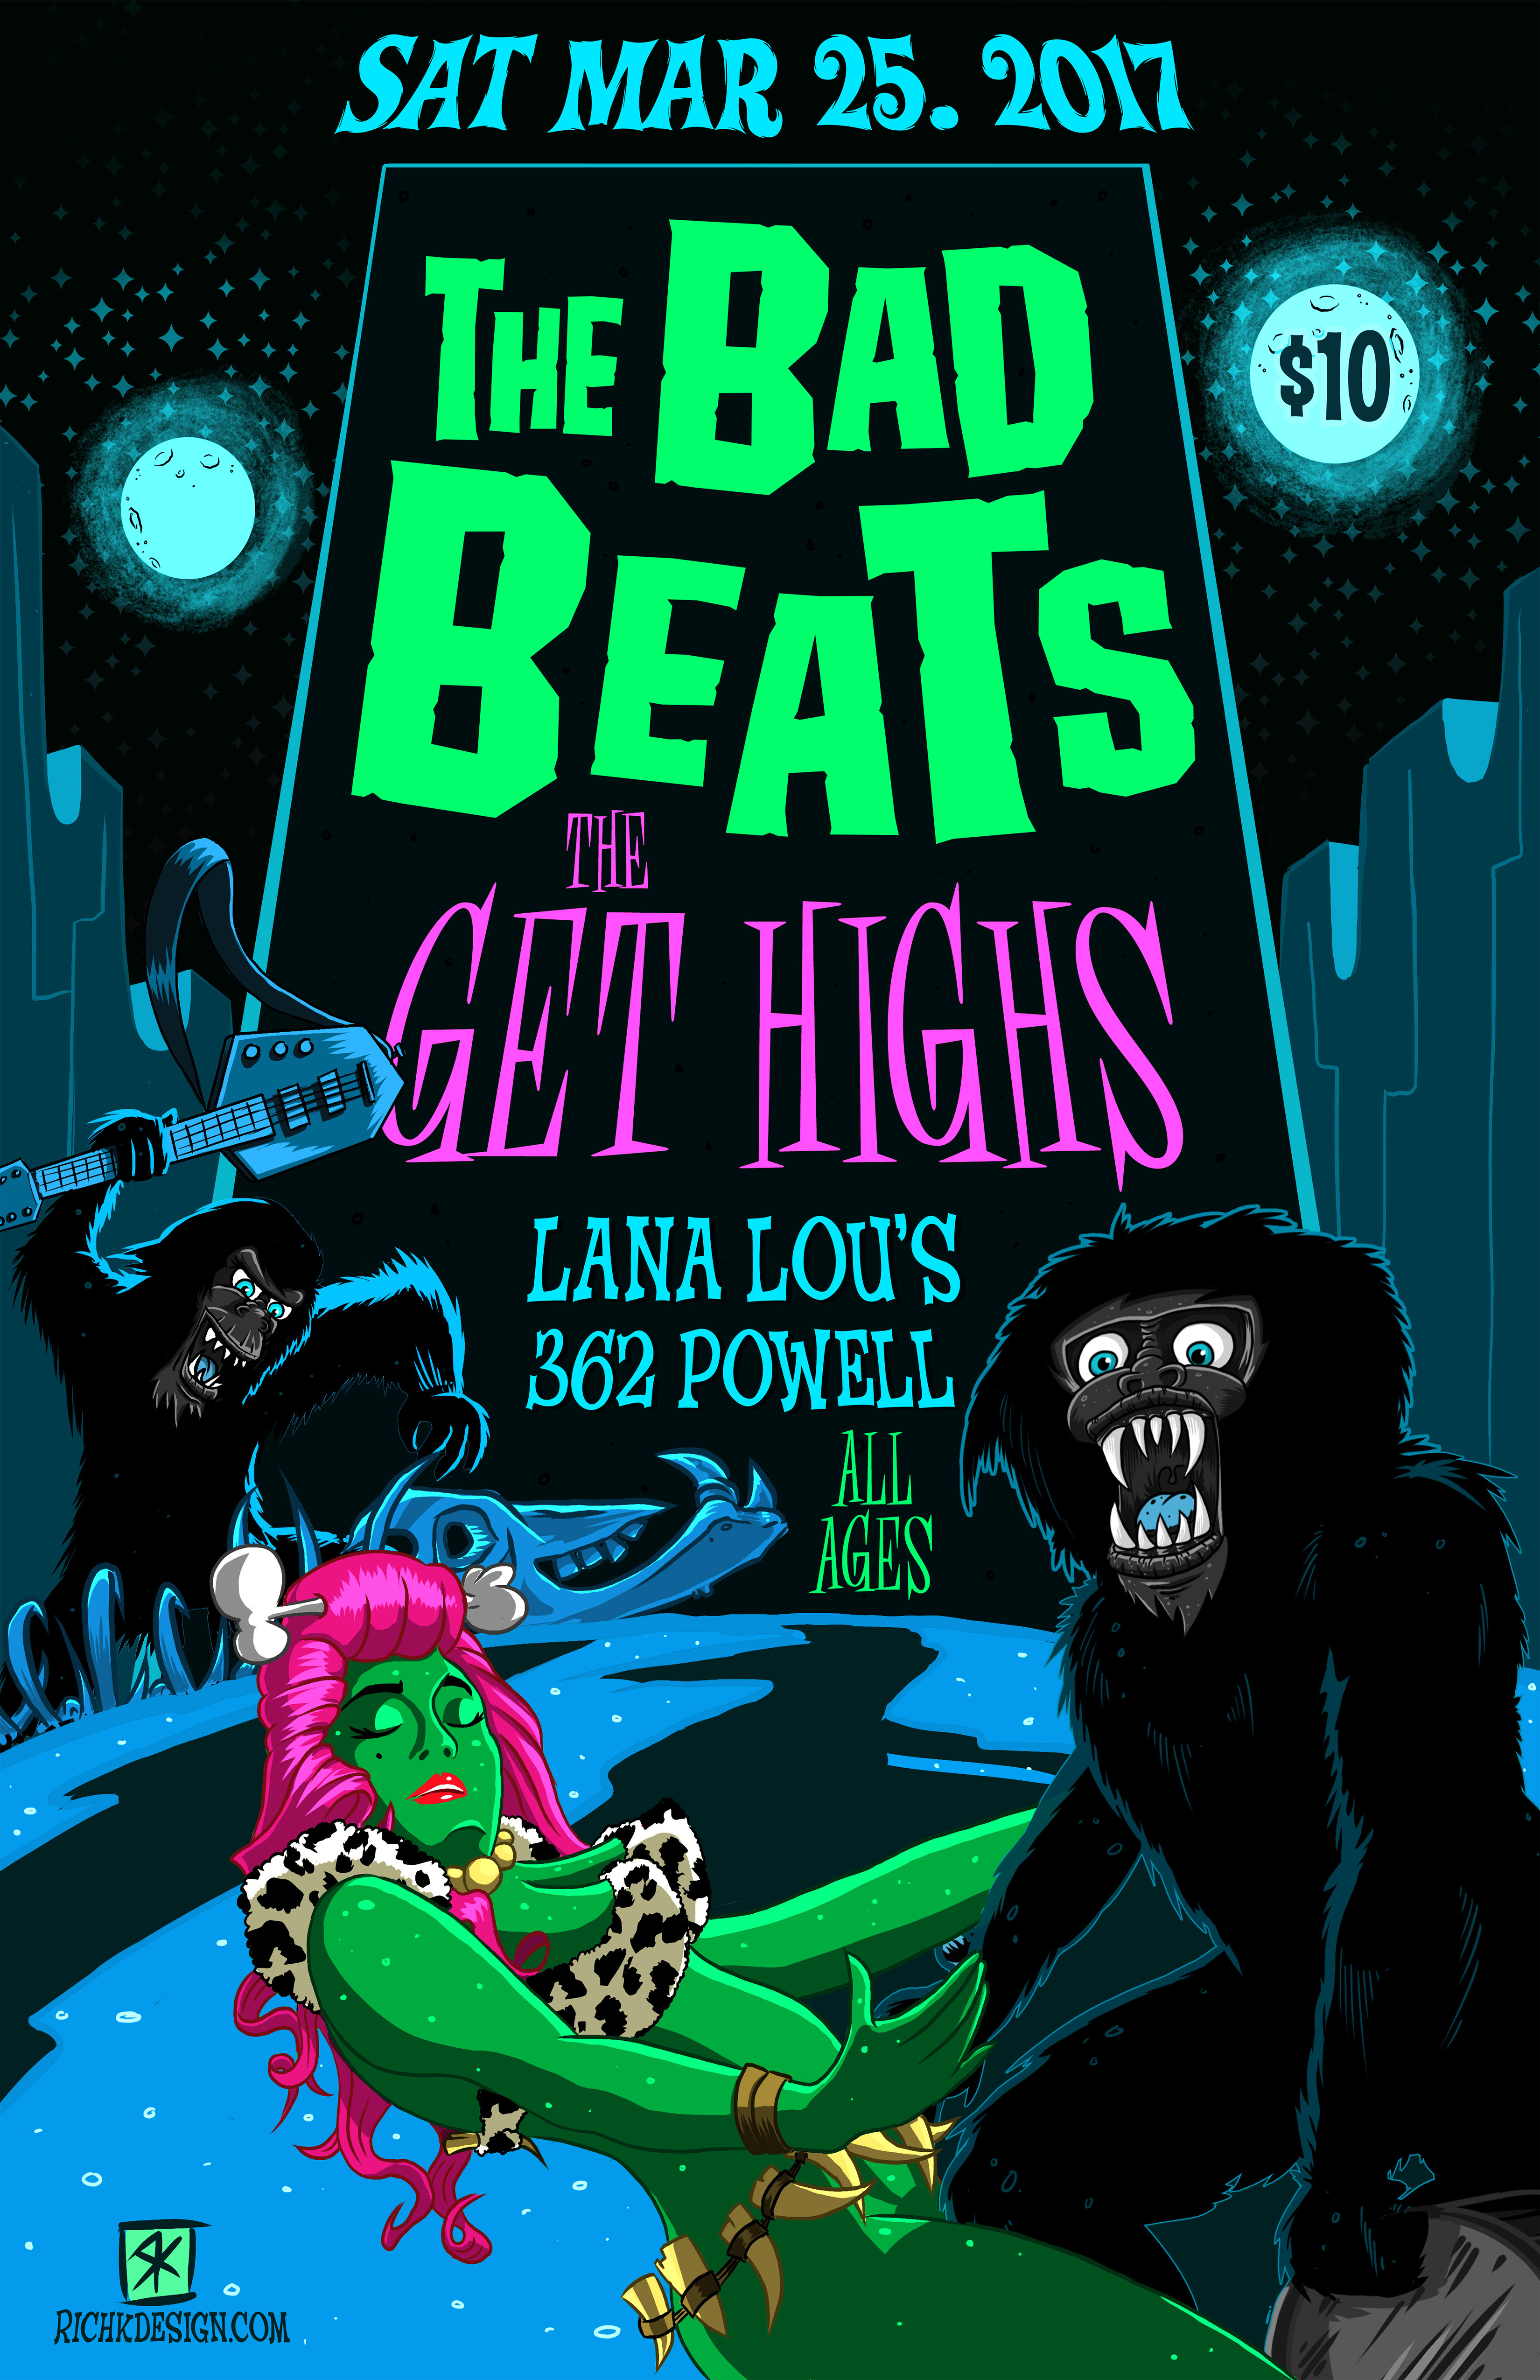 Bad BeatsMar 25th